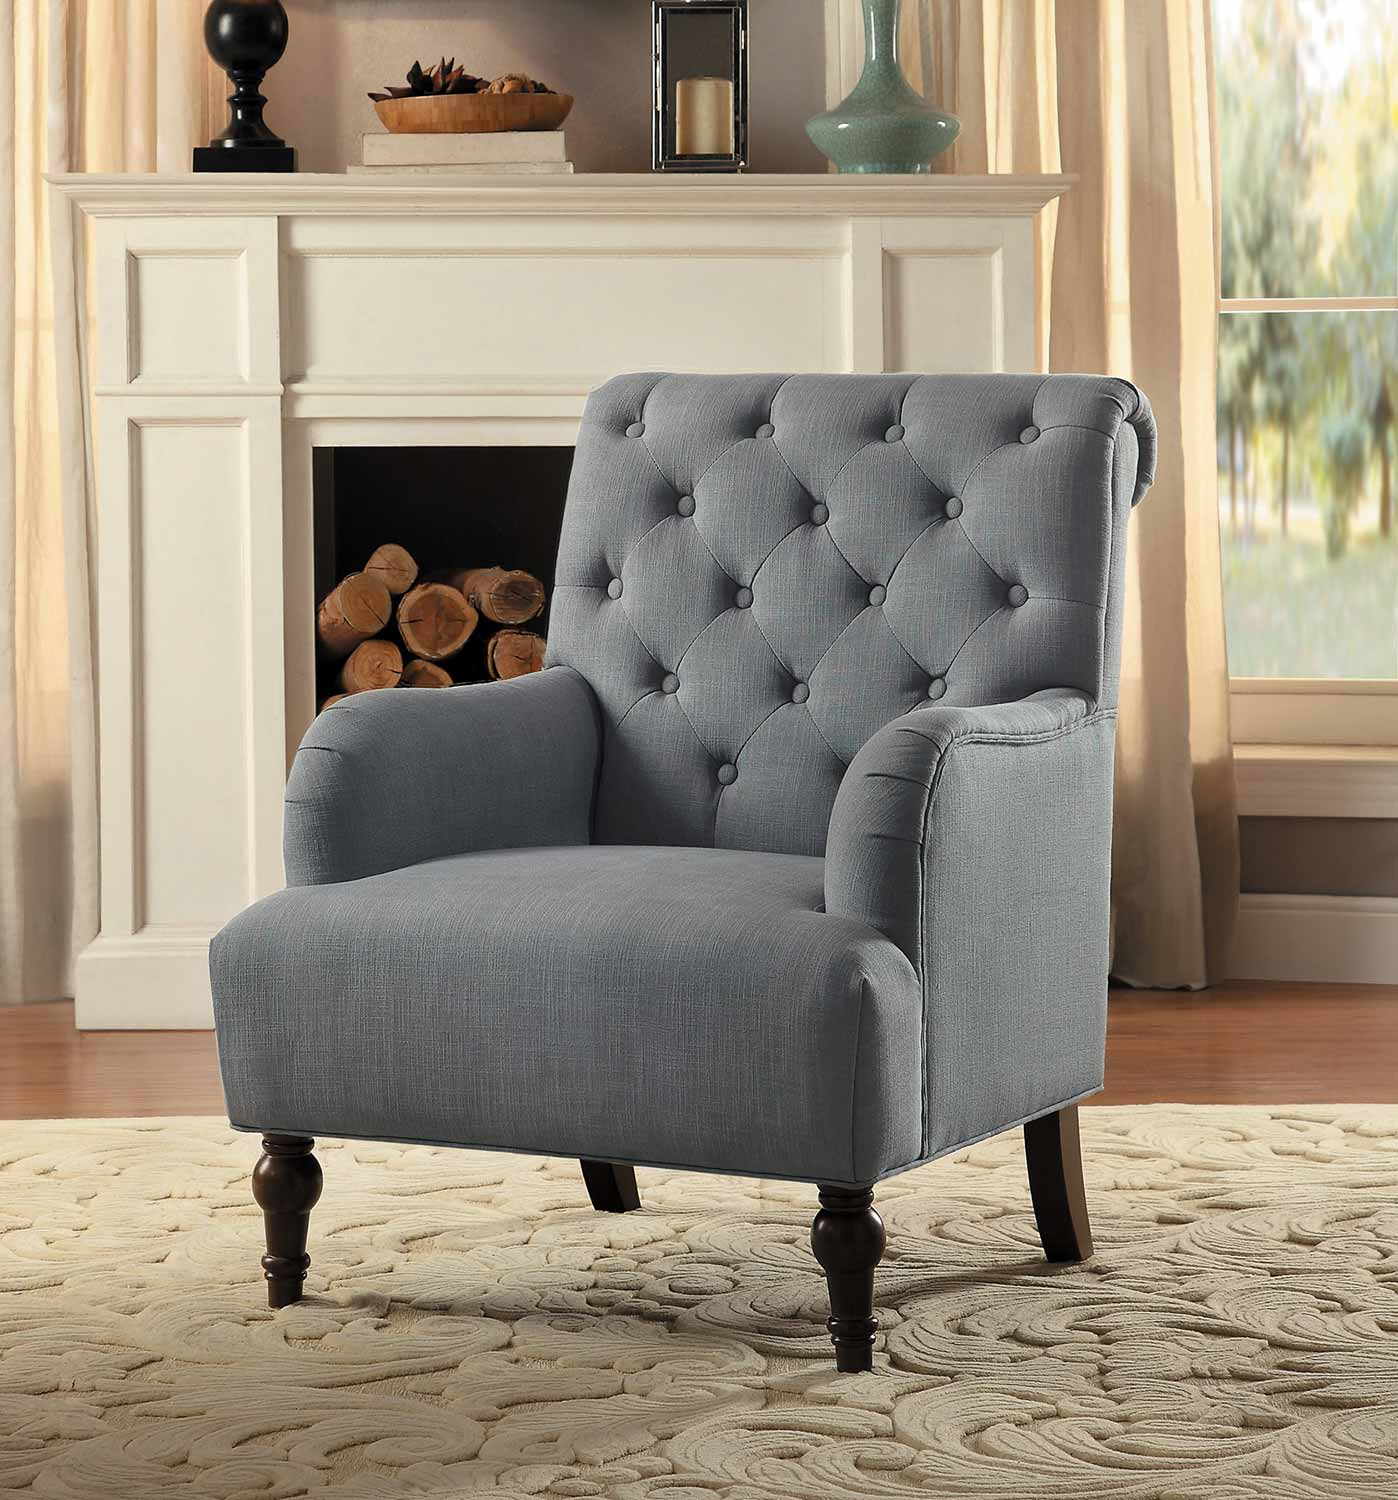 Homelegance Cotswold Accent Chair Gray 1280GY